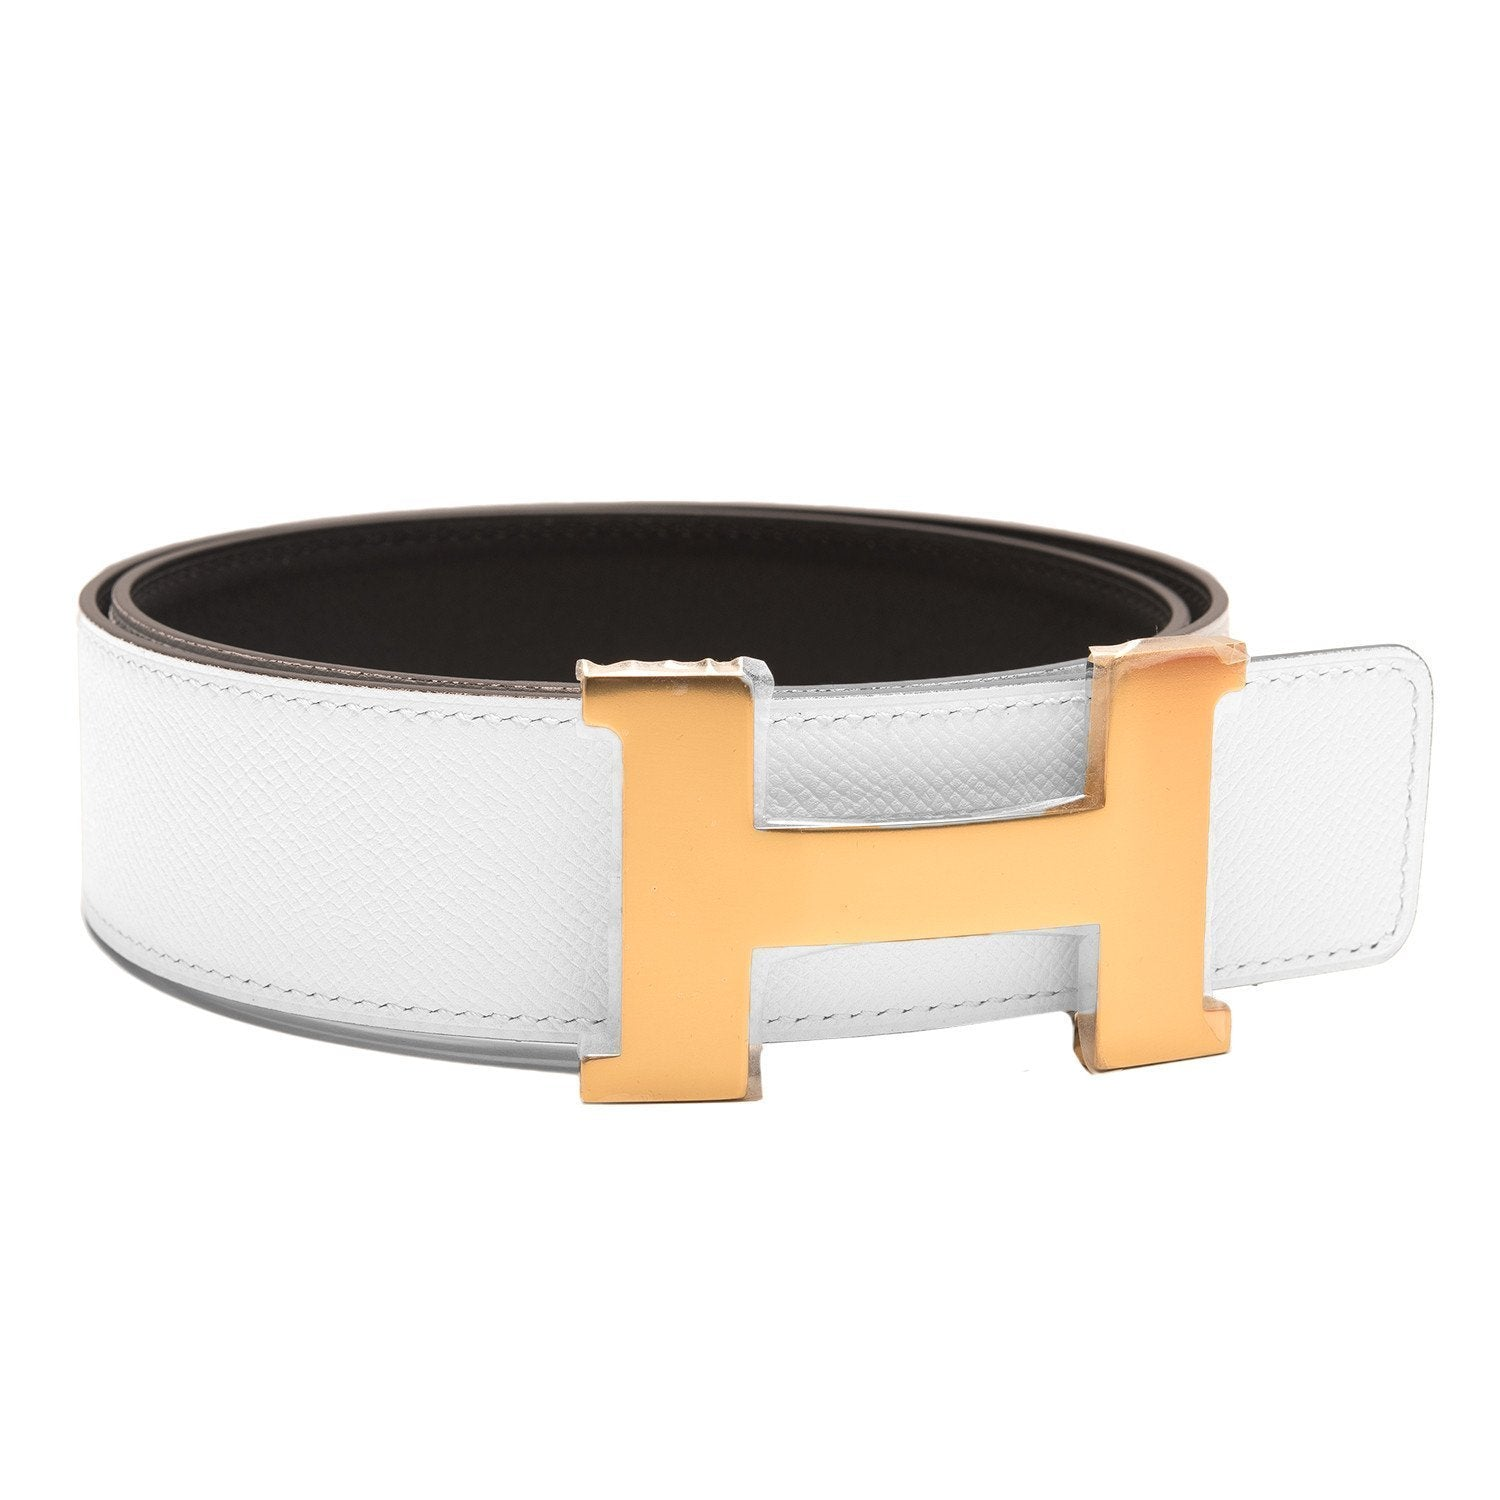 Hermes 42Mm Reversible Blackwhite Constance H Belt 85Cm Gold Buckle Accessories